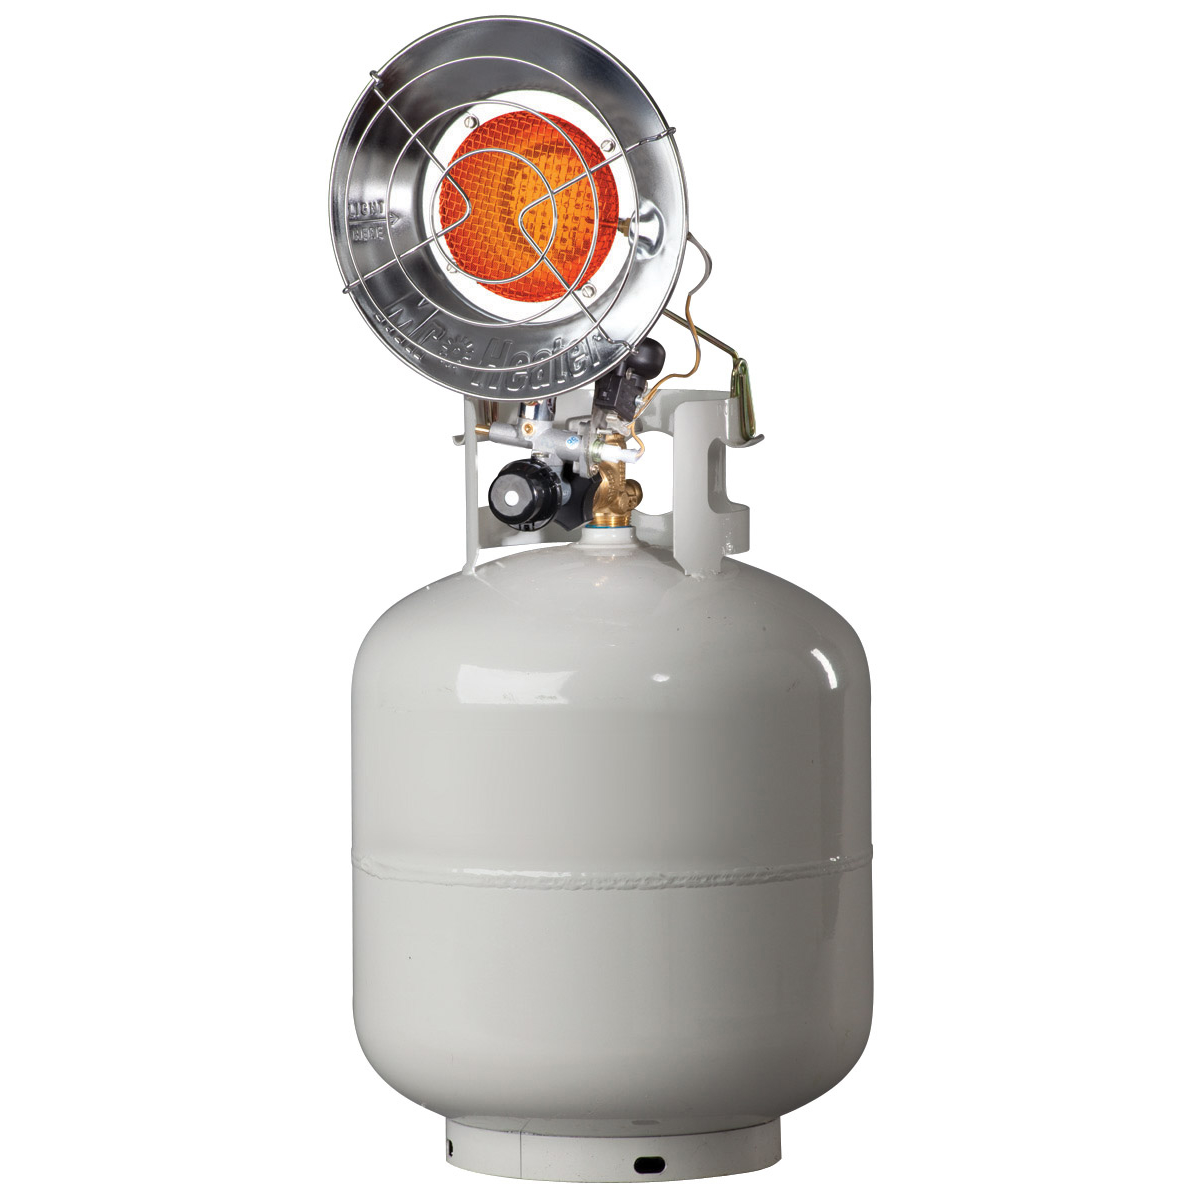 Mr Heater F242105 10-15K BTU Spark Ignition Tank Top Propane Patio Heater